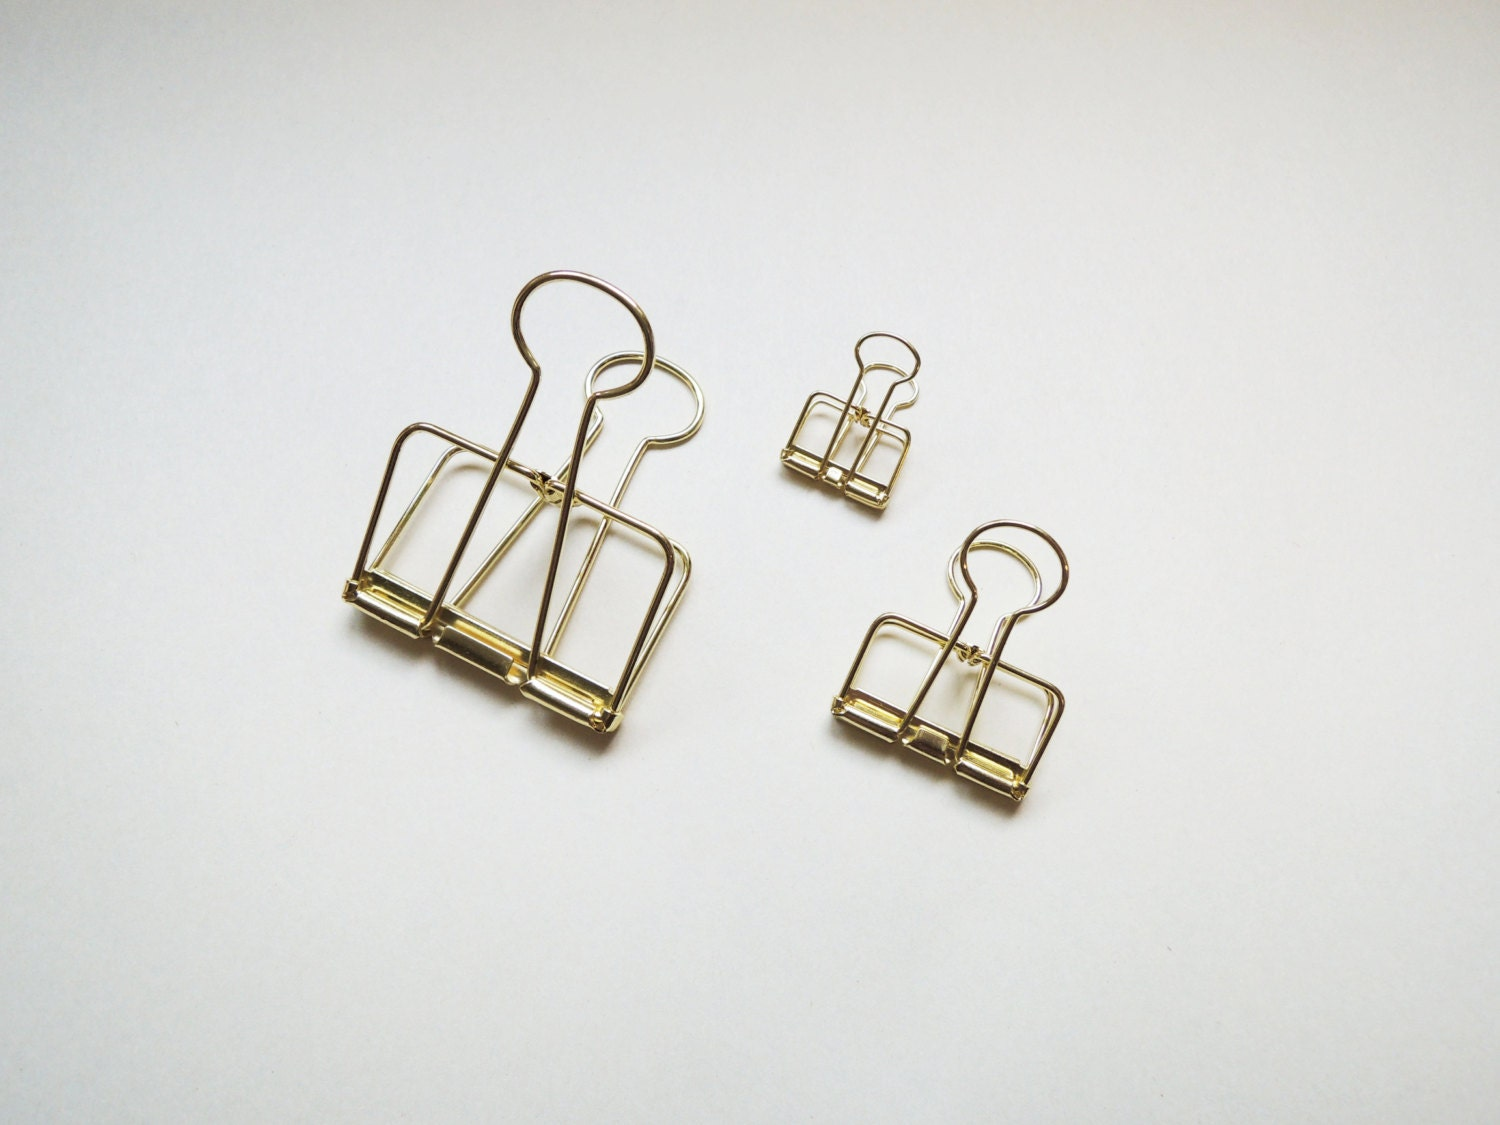 Reduced Gold Wire Bulldog Clips